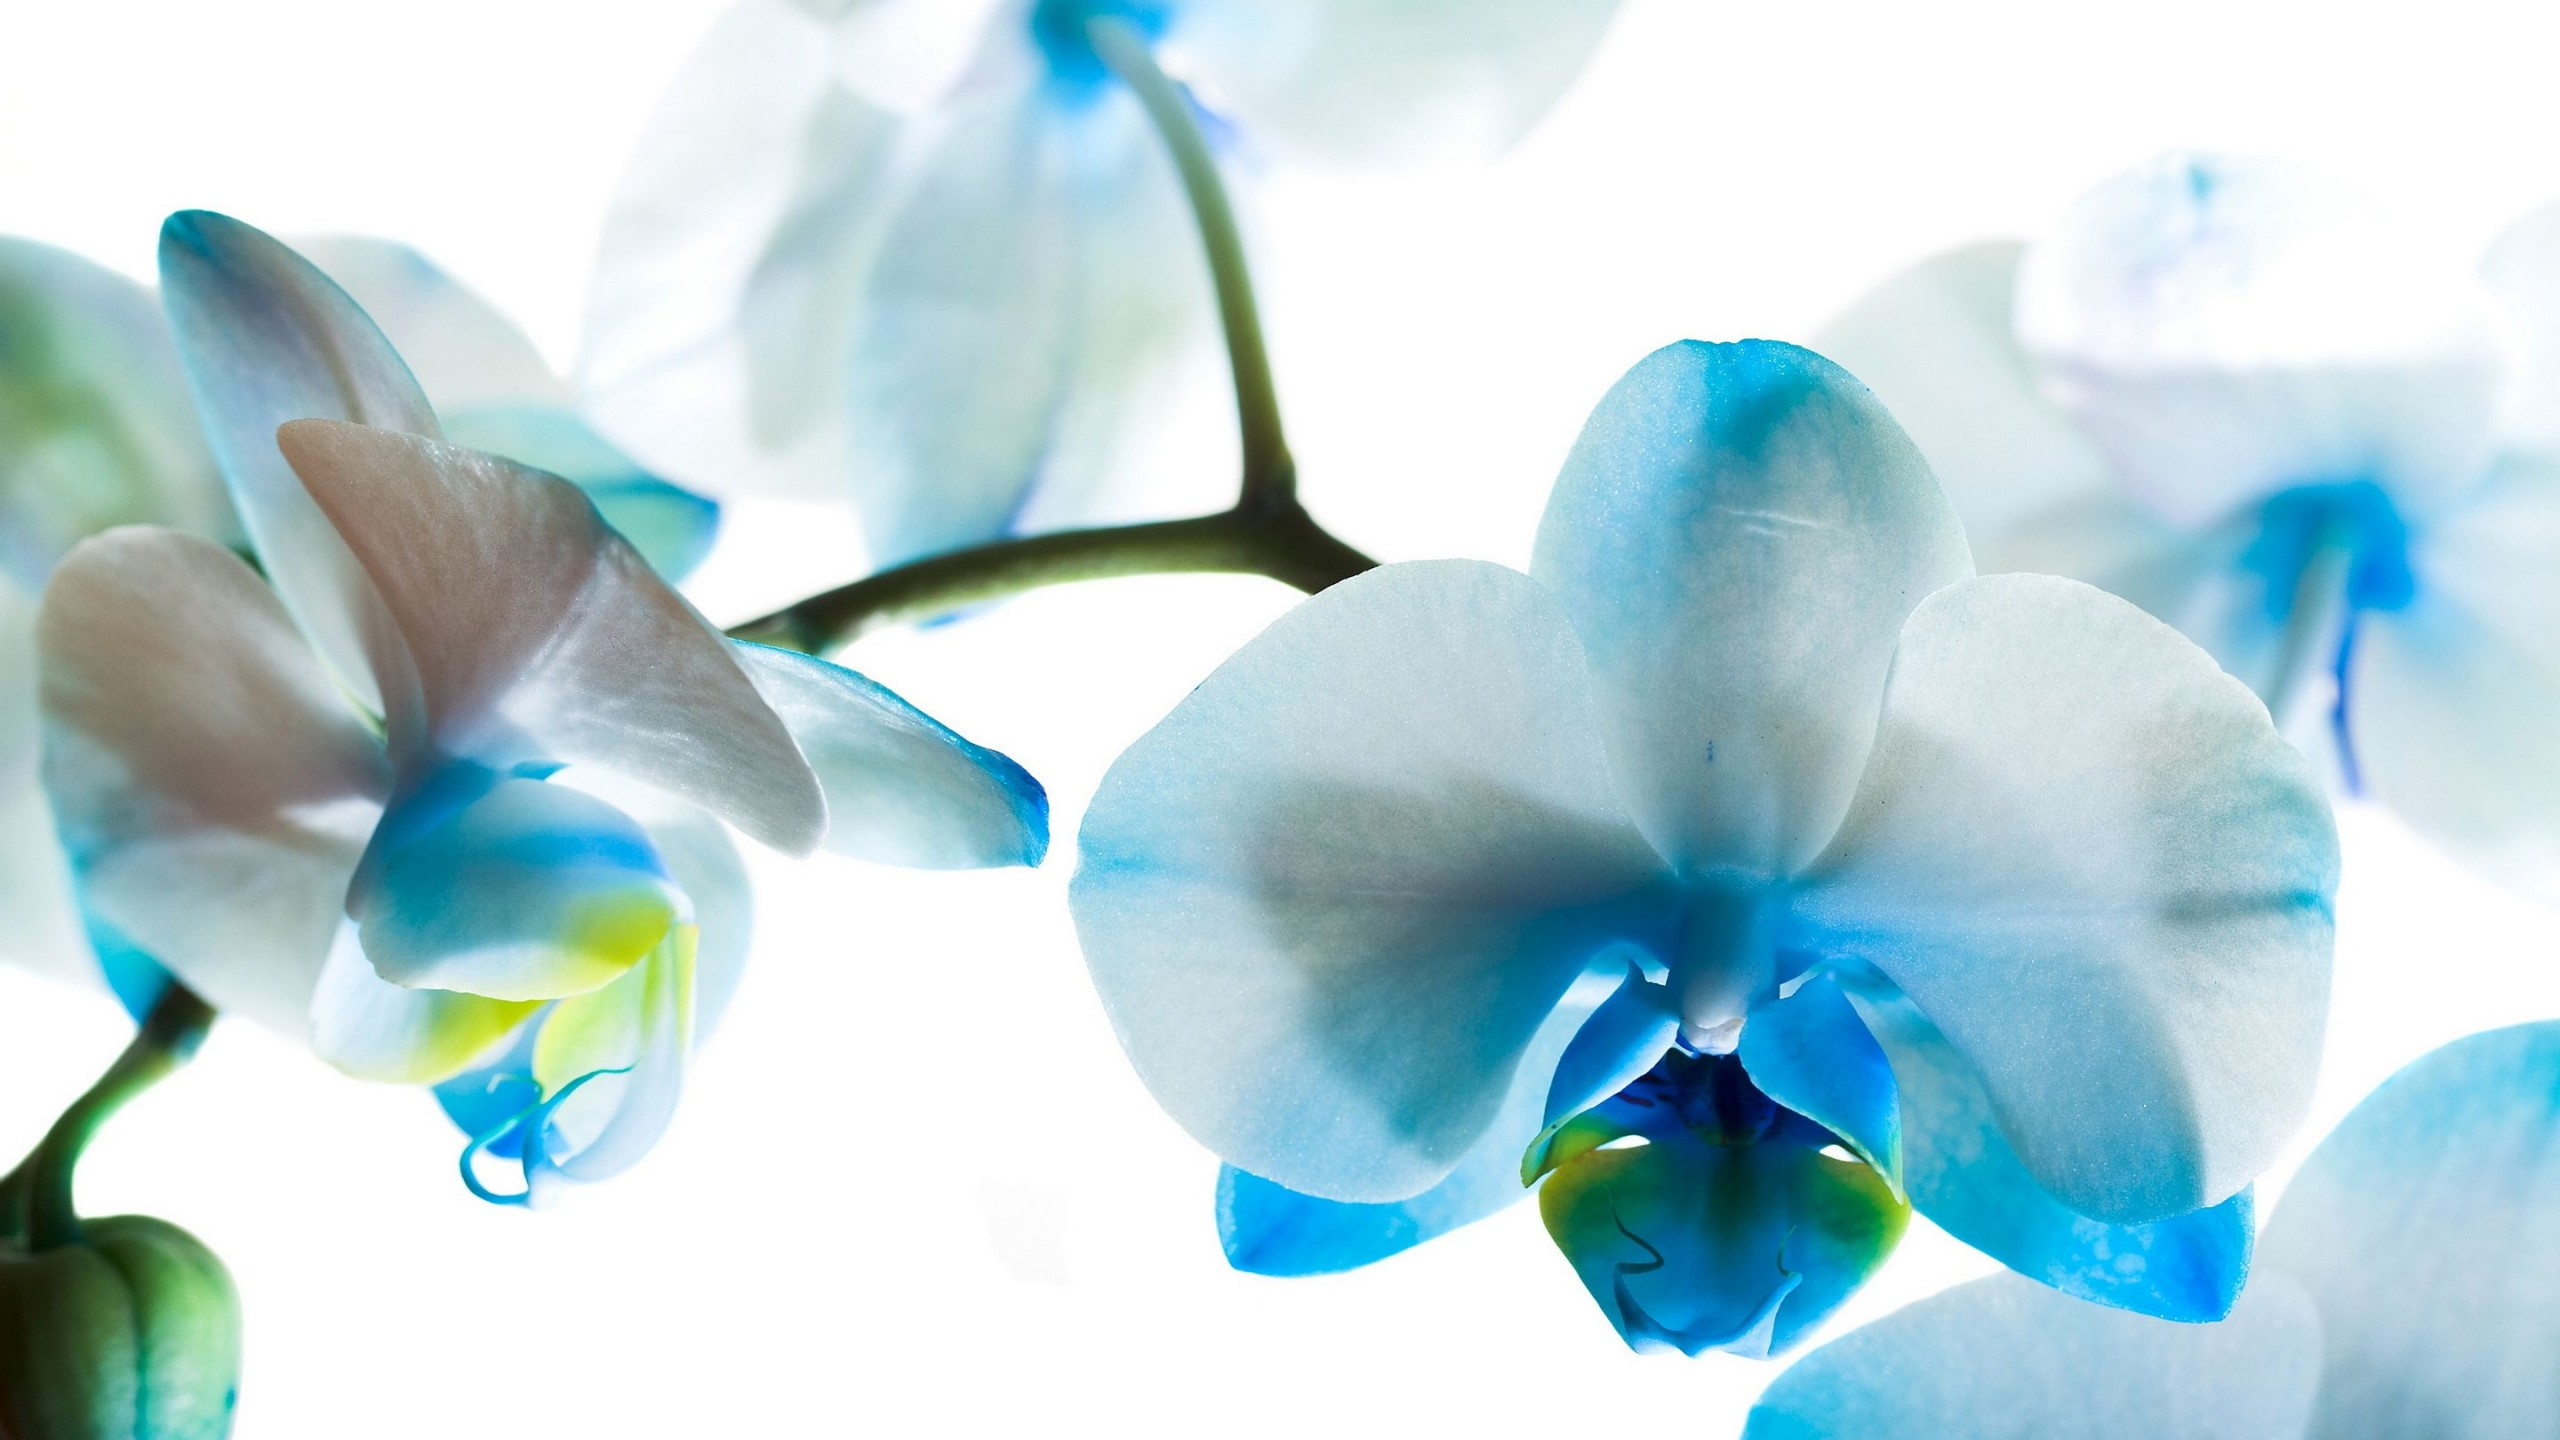 Hd Wallpapers Butterflies Widescreen Blue Orchid Wallpapers High Quality Download Free